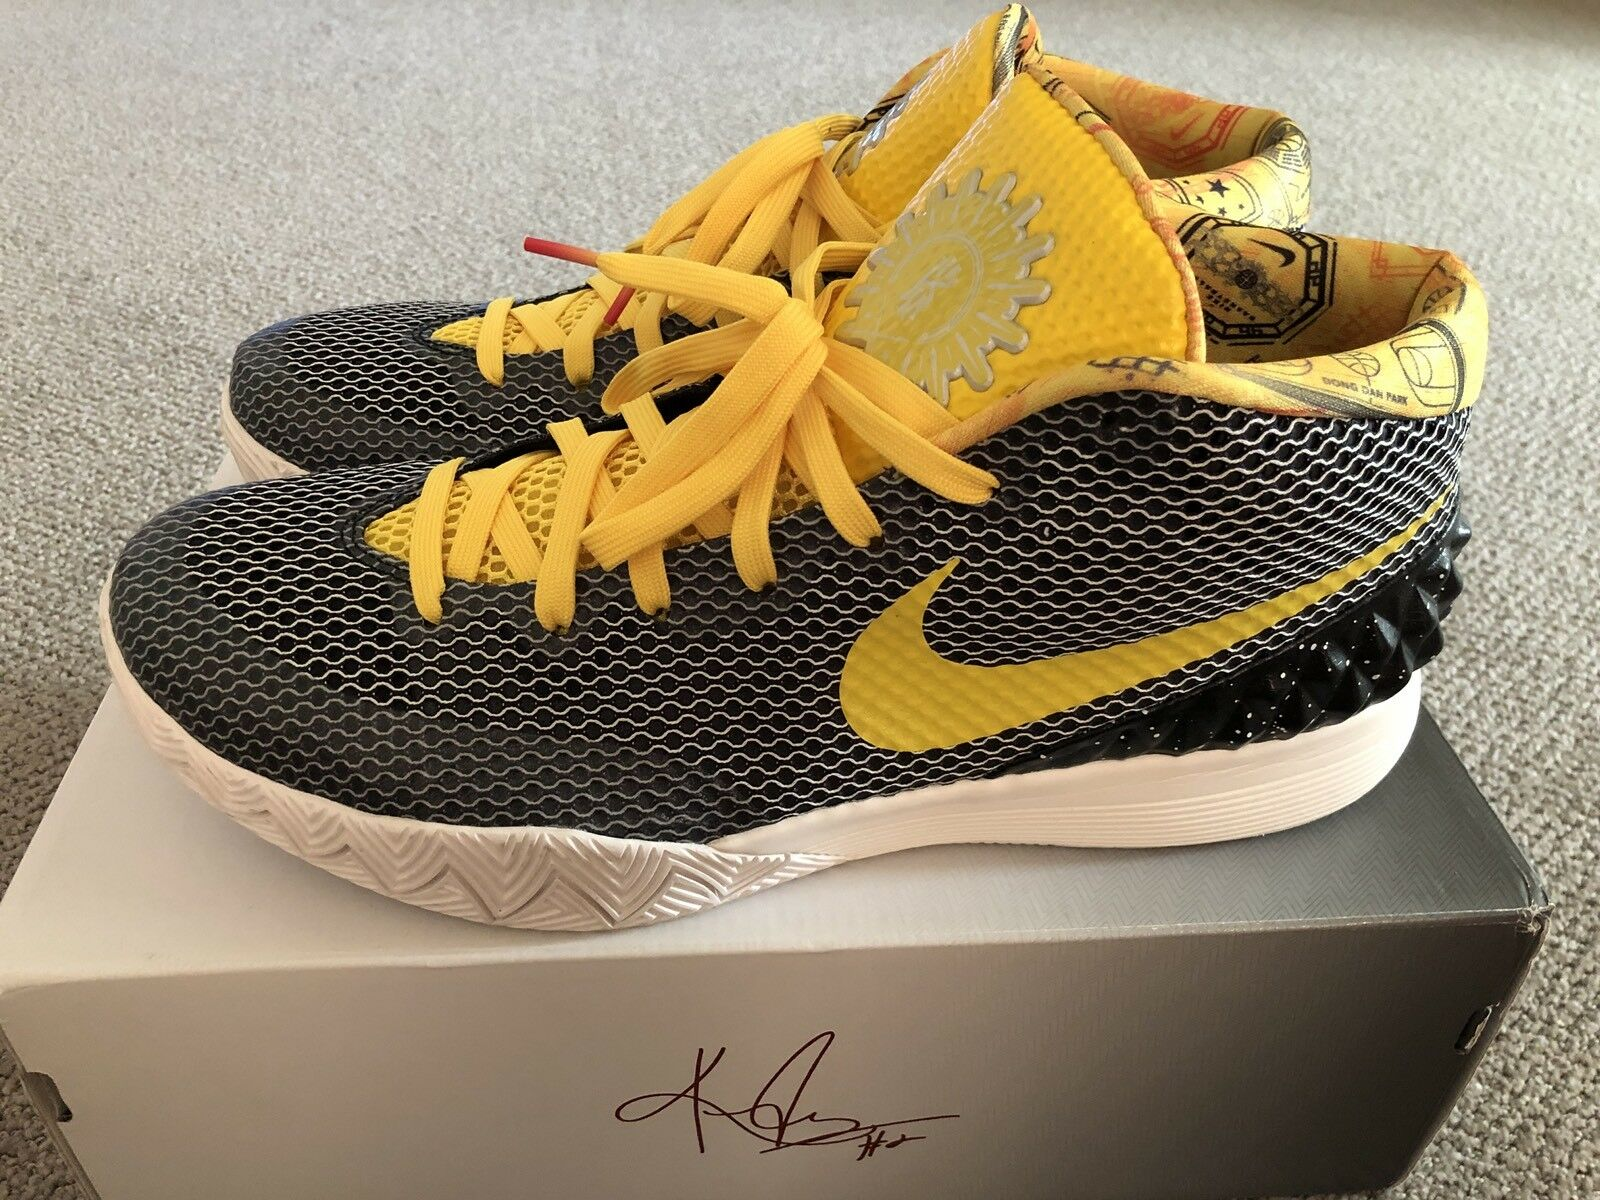 Nike Kyrie 1 LMTD  Cheap and fashionable